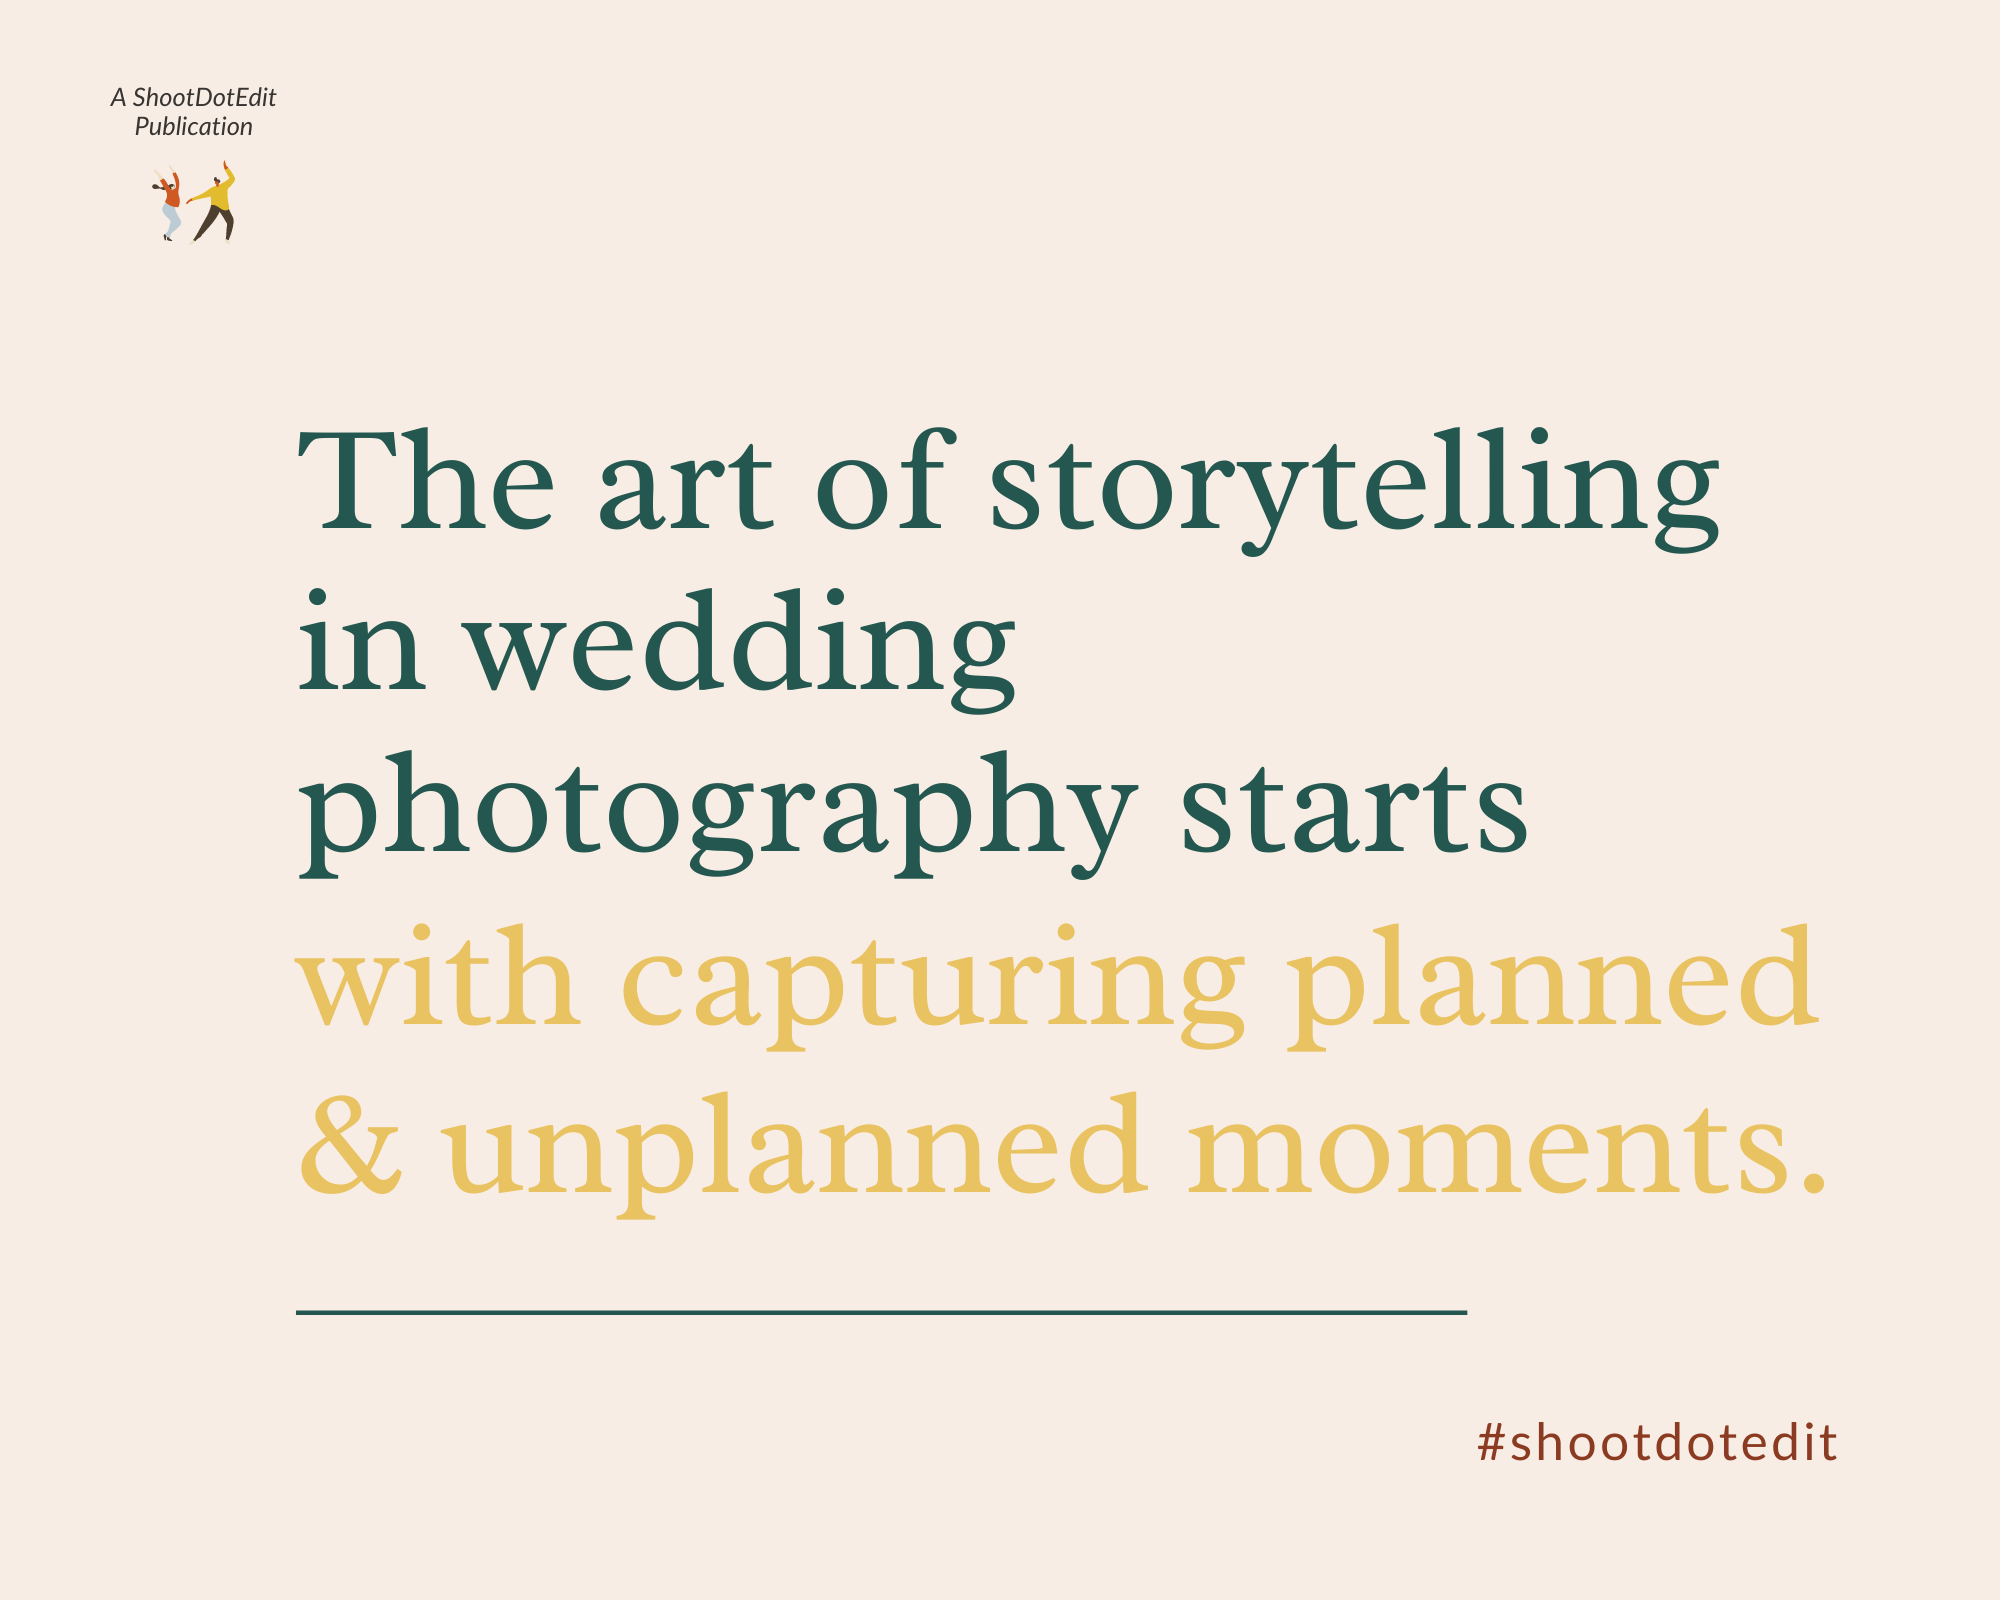 Infographic stating the art of storytelling in wedding photography starts with capturing planned and unplanned moments